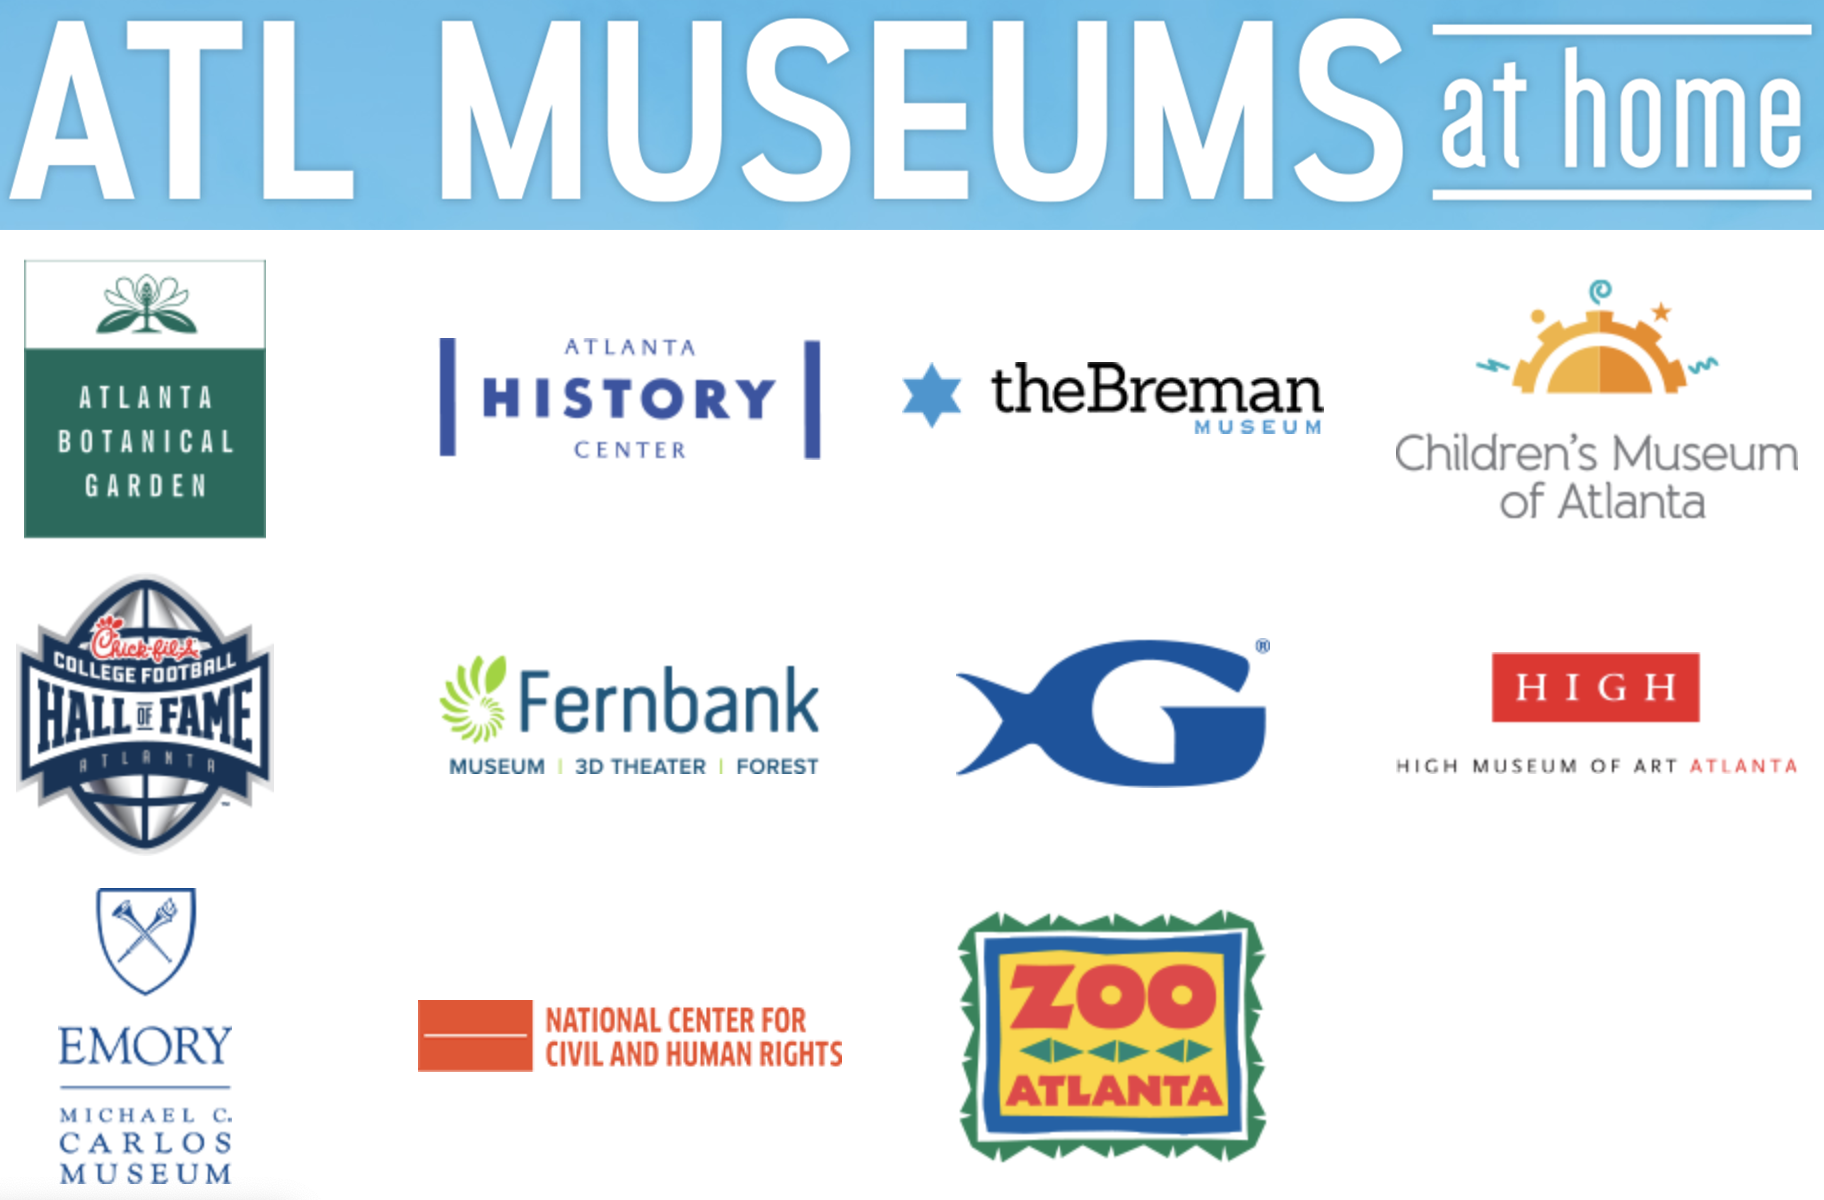 Collage of Atlanta museum logos as part of the ATL Museums at Home initiative.